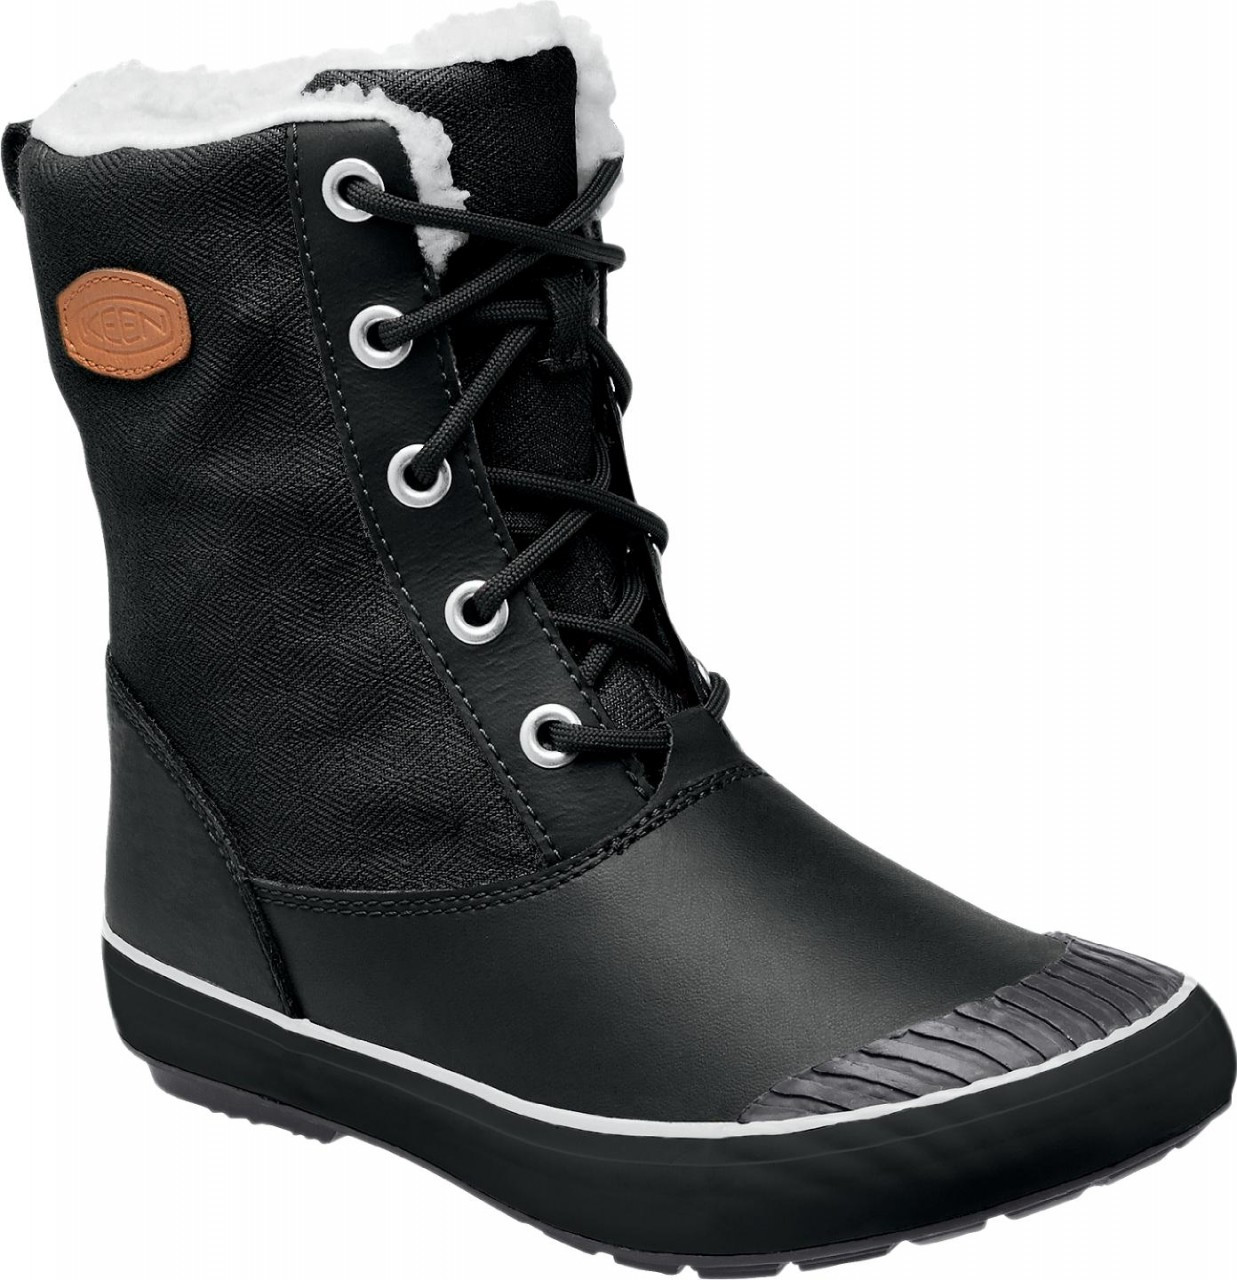 36633b946b1 Women's Keen Elsa Black Winter Boot